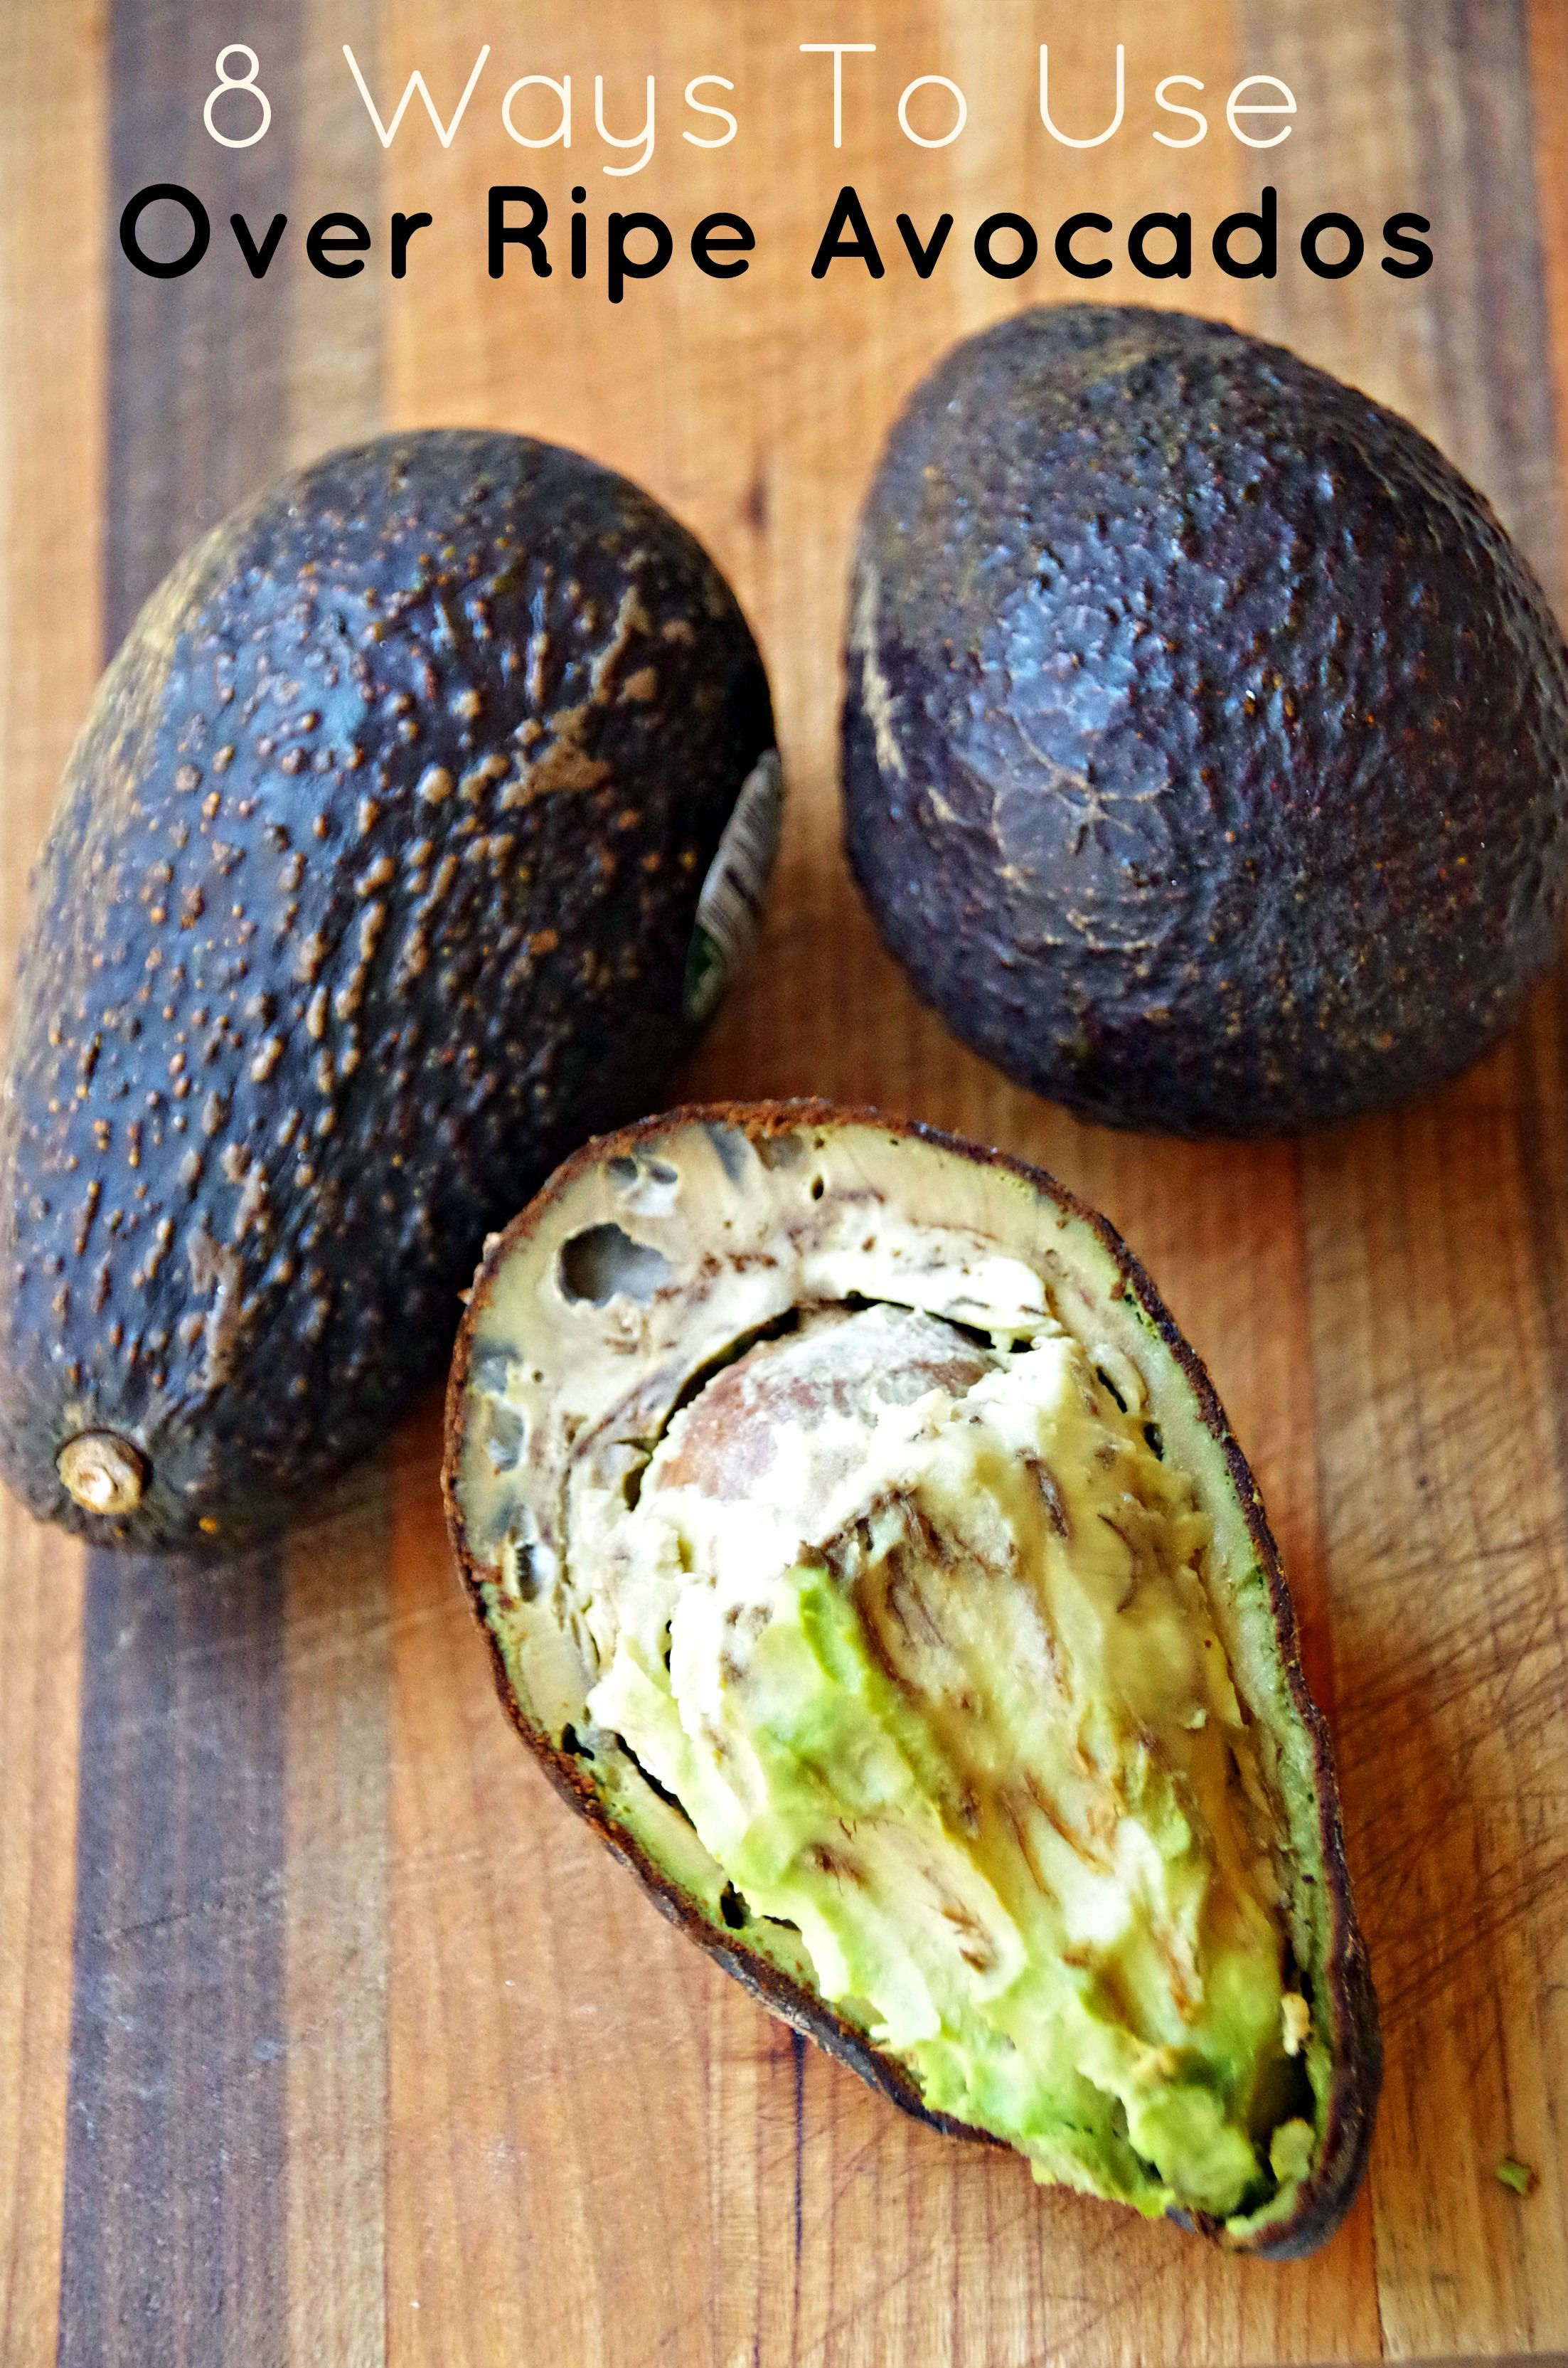 Wondering What To Do With Over Ripe Avocados Here Are A Few Creative Ways To Use Over Ripe Avocados Rathe Avocado Recipes Ripe Avocado Recipes Avocado Dessert